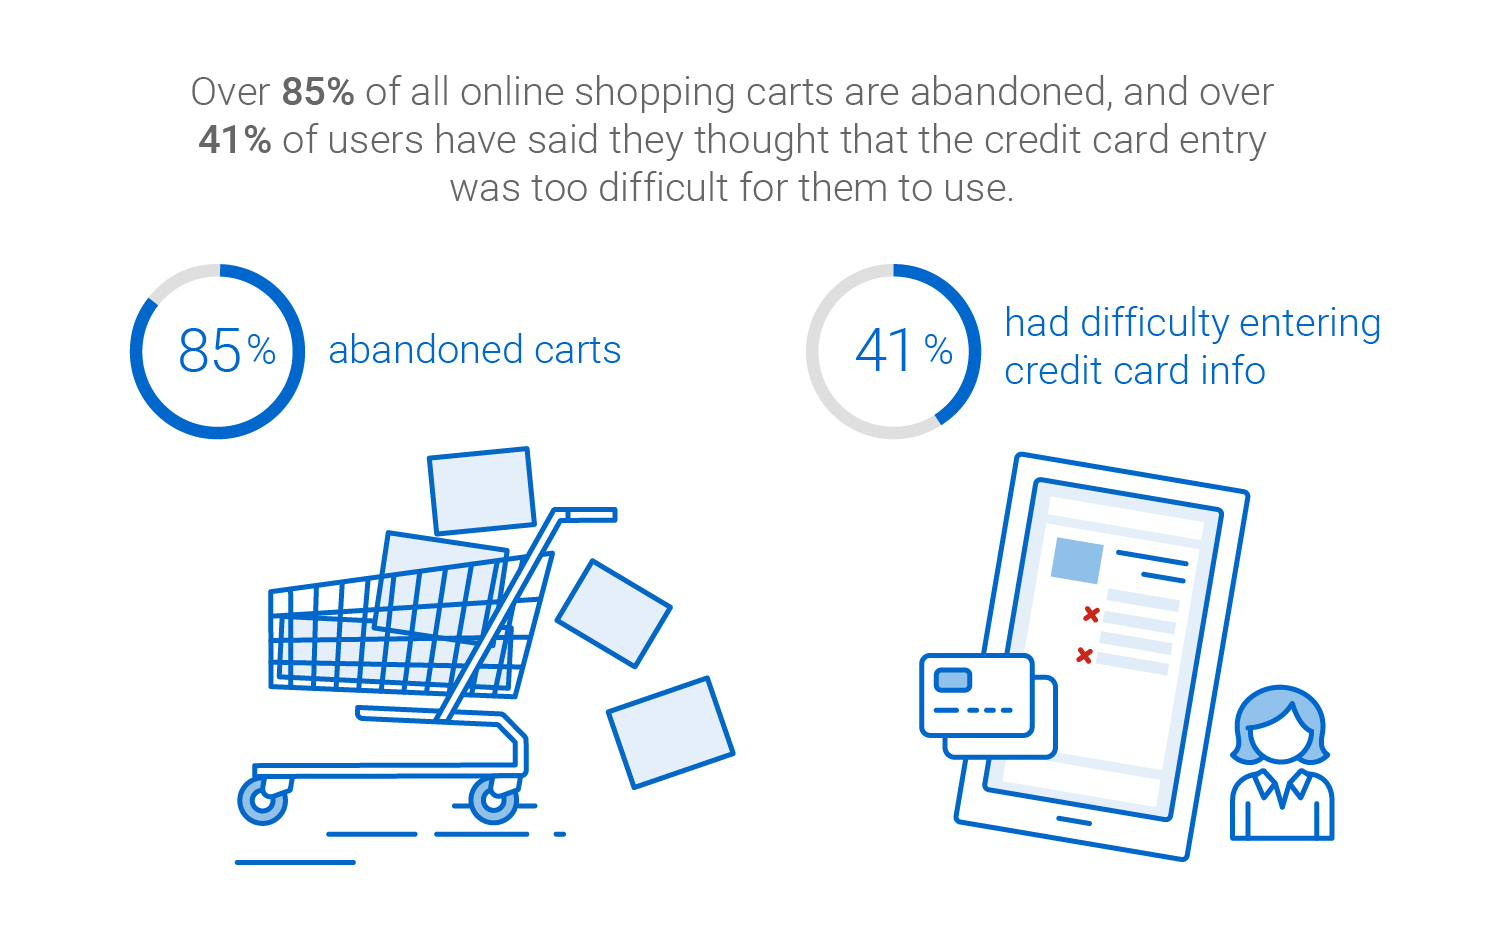 Over 85% of all online carts are abandoned and over 41% of users said credit card entry was too difficult.